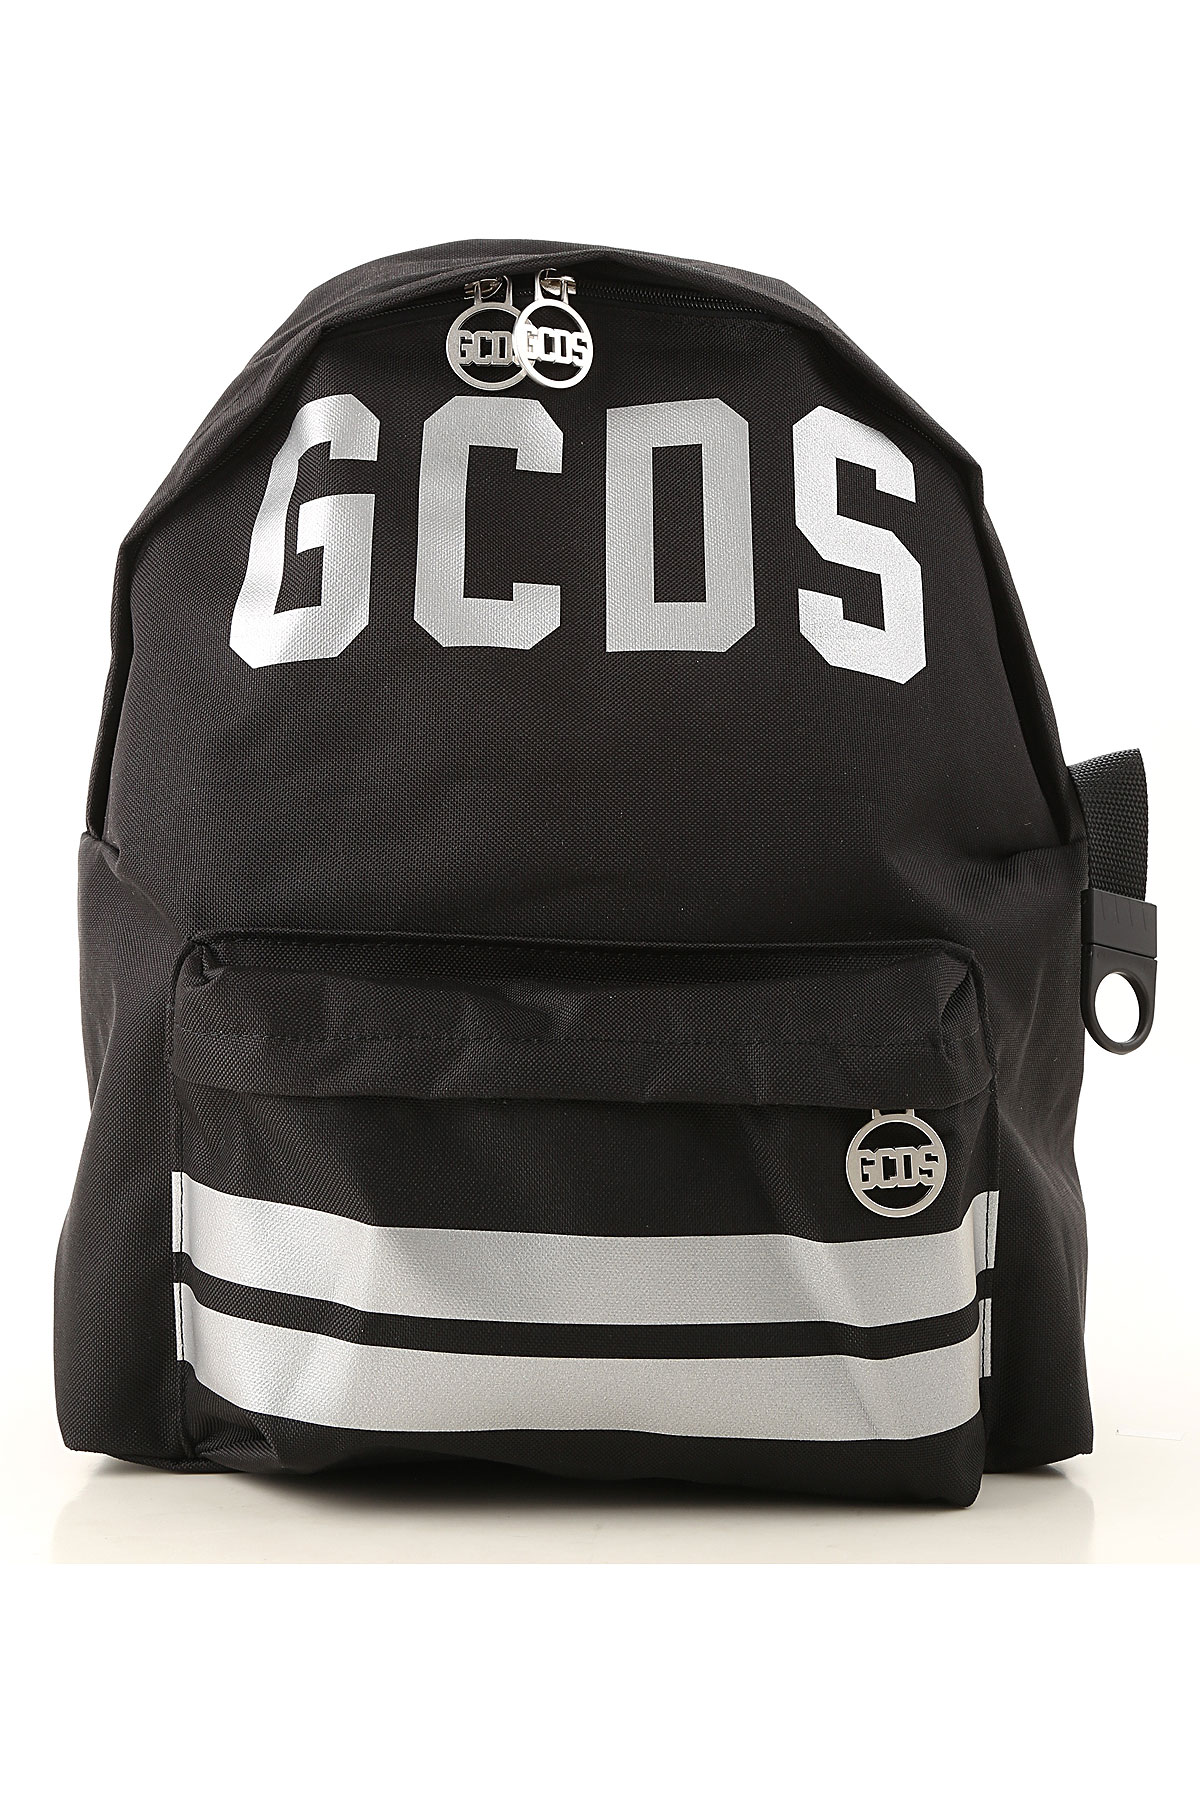 Image of GCDS Backpack for Women, Black, polyester, 2017